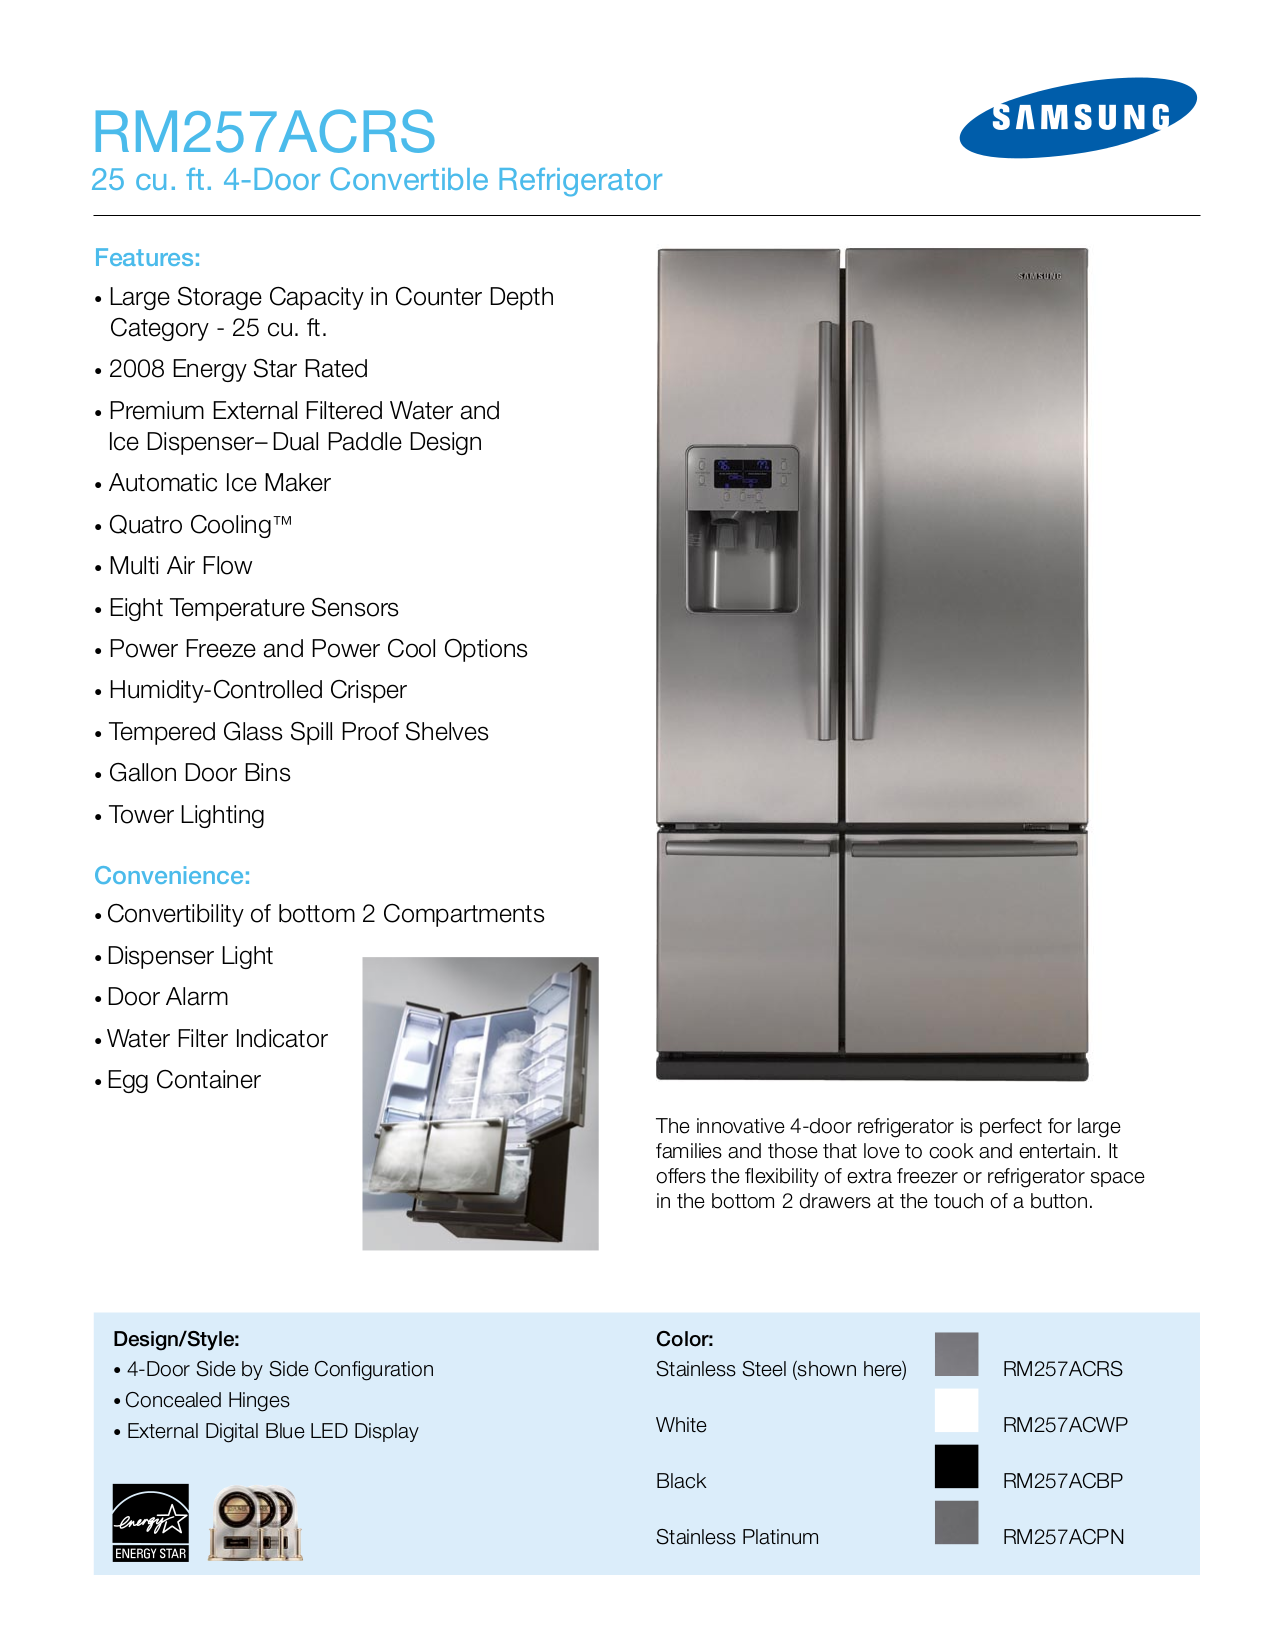 pdf for Samsung Refrigerator RS275ACPN manual